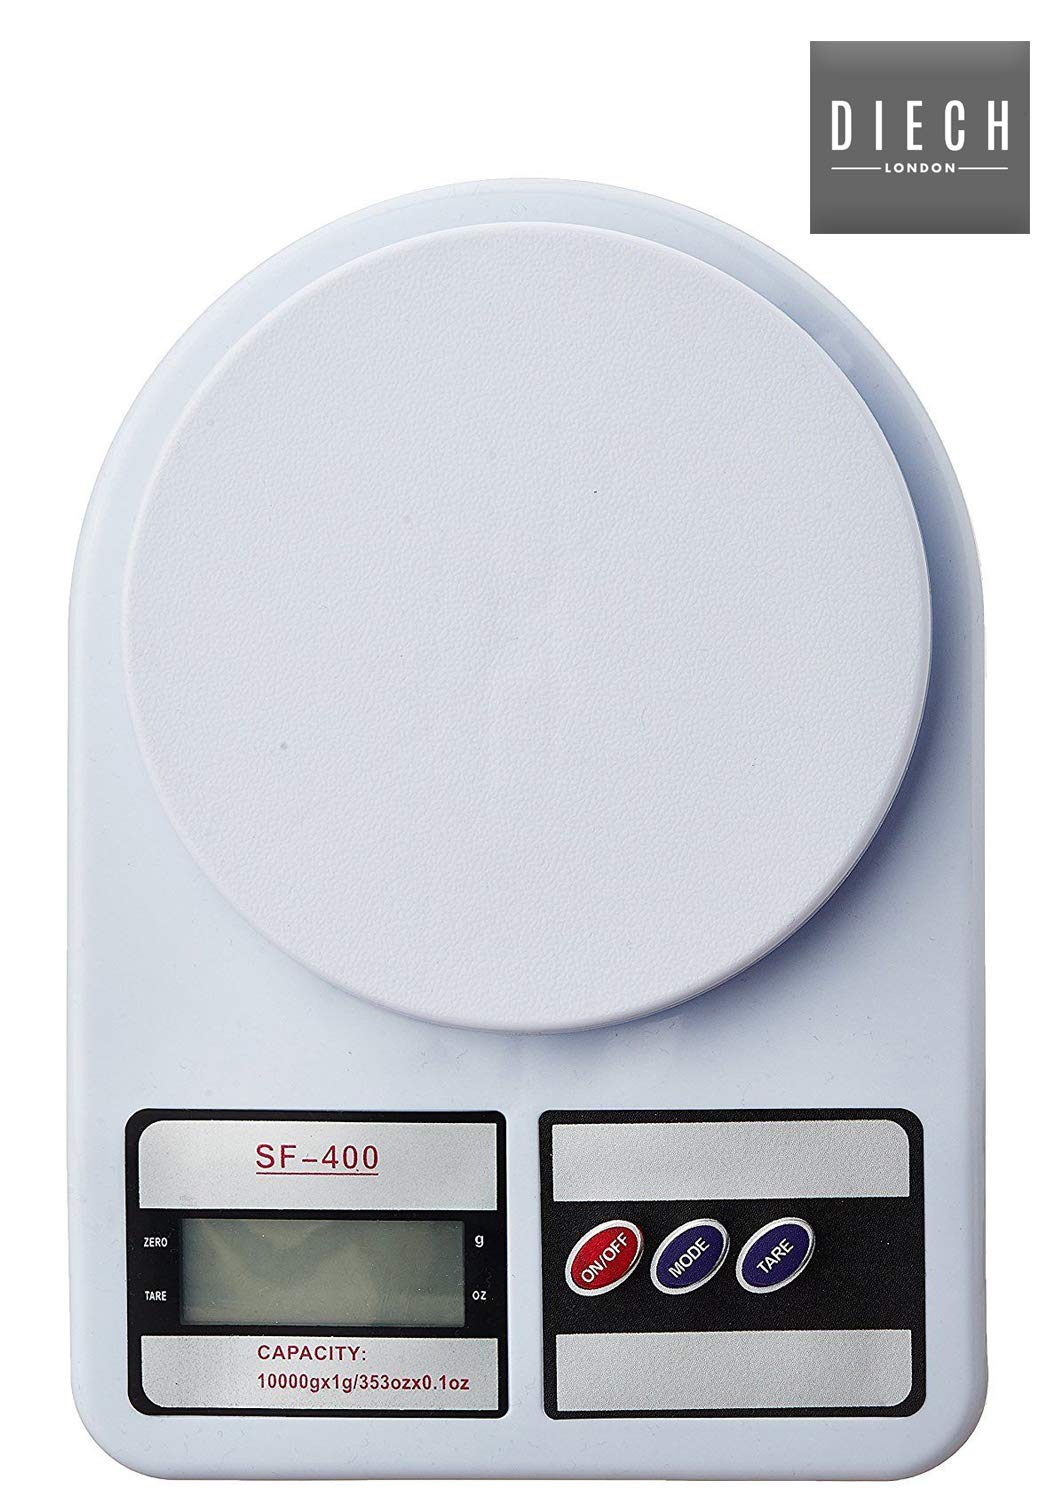 Weighs Up to 10Kg DIECH Digital LCD Electronic Kitchen Postal Scales Postage Parcel Weighing Weight